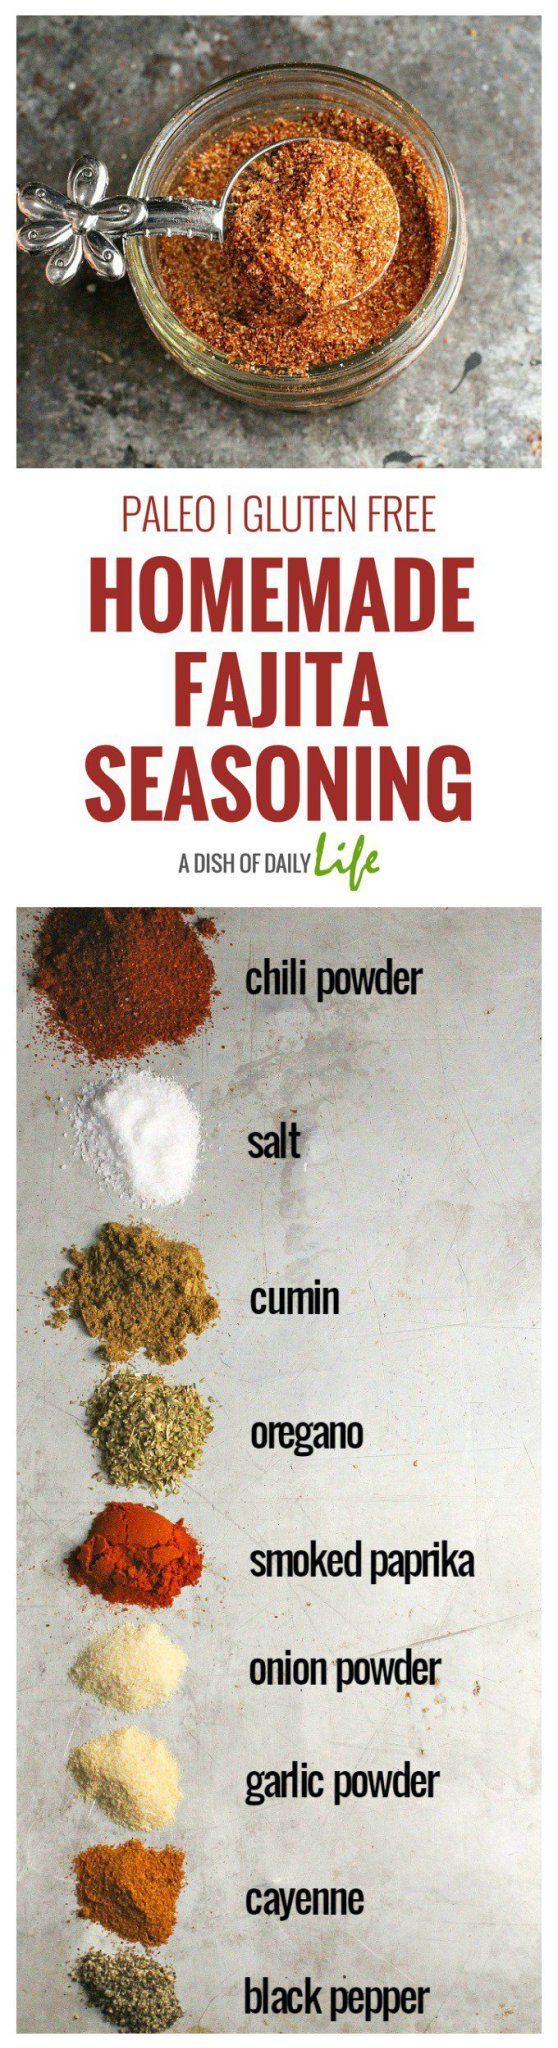 This Fajita Seasoning Recipe is perfect for chicken, beef, shrimp, and vegetables, either as a dry rub or a marinade! You can make at home in 5 minutes with ingredients you already have in your spice cabinet and it tastes better than the store bought packets! Naturally paleo, gluten free, dairy free, and sugar free.